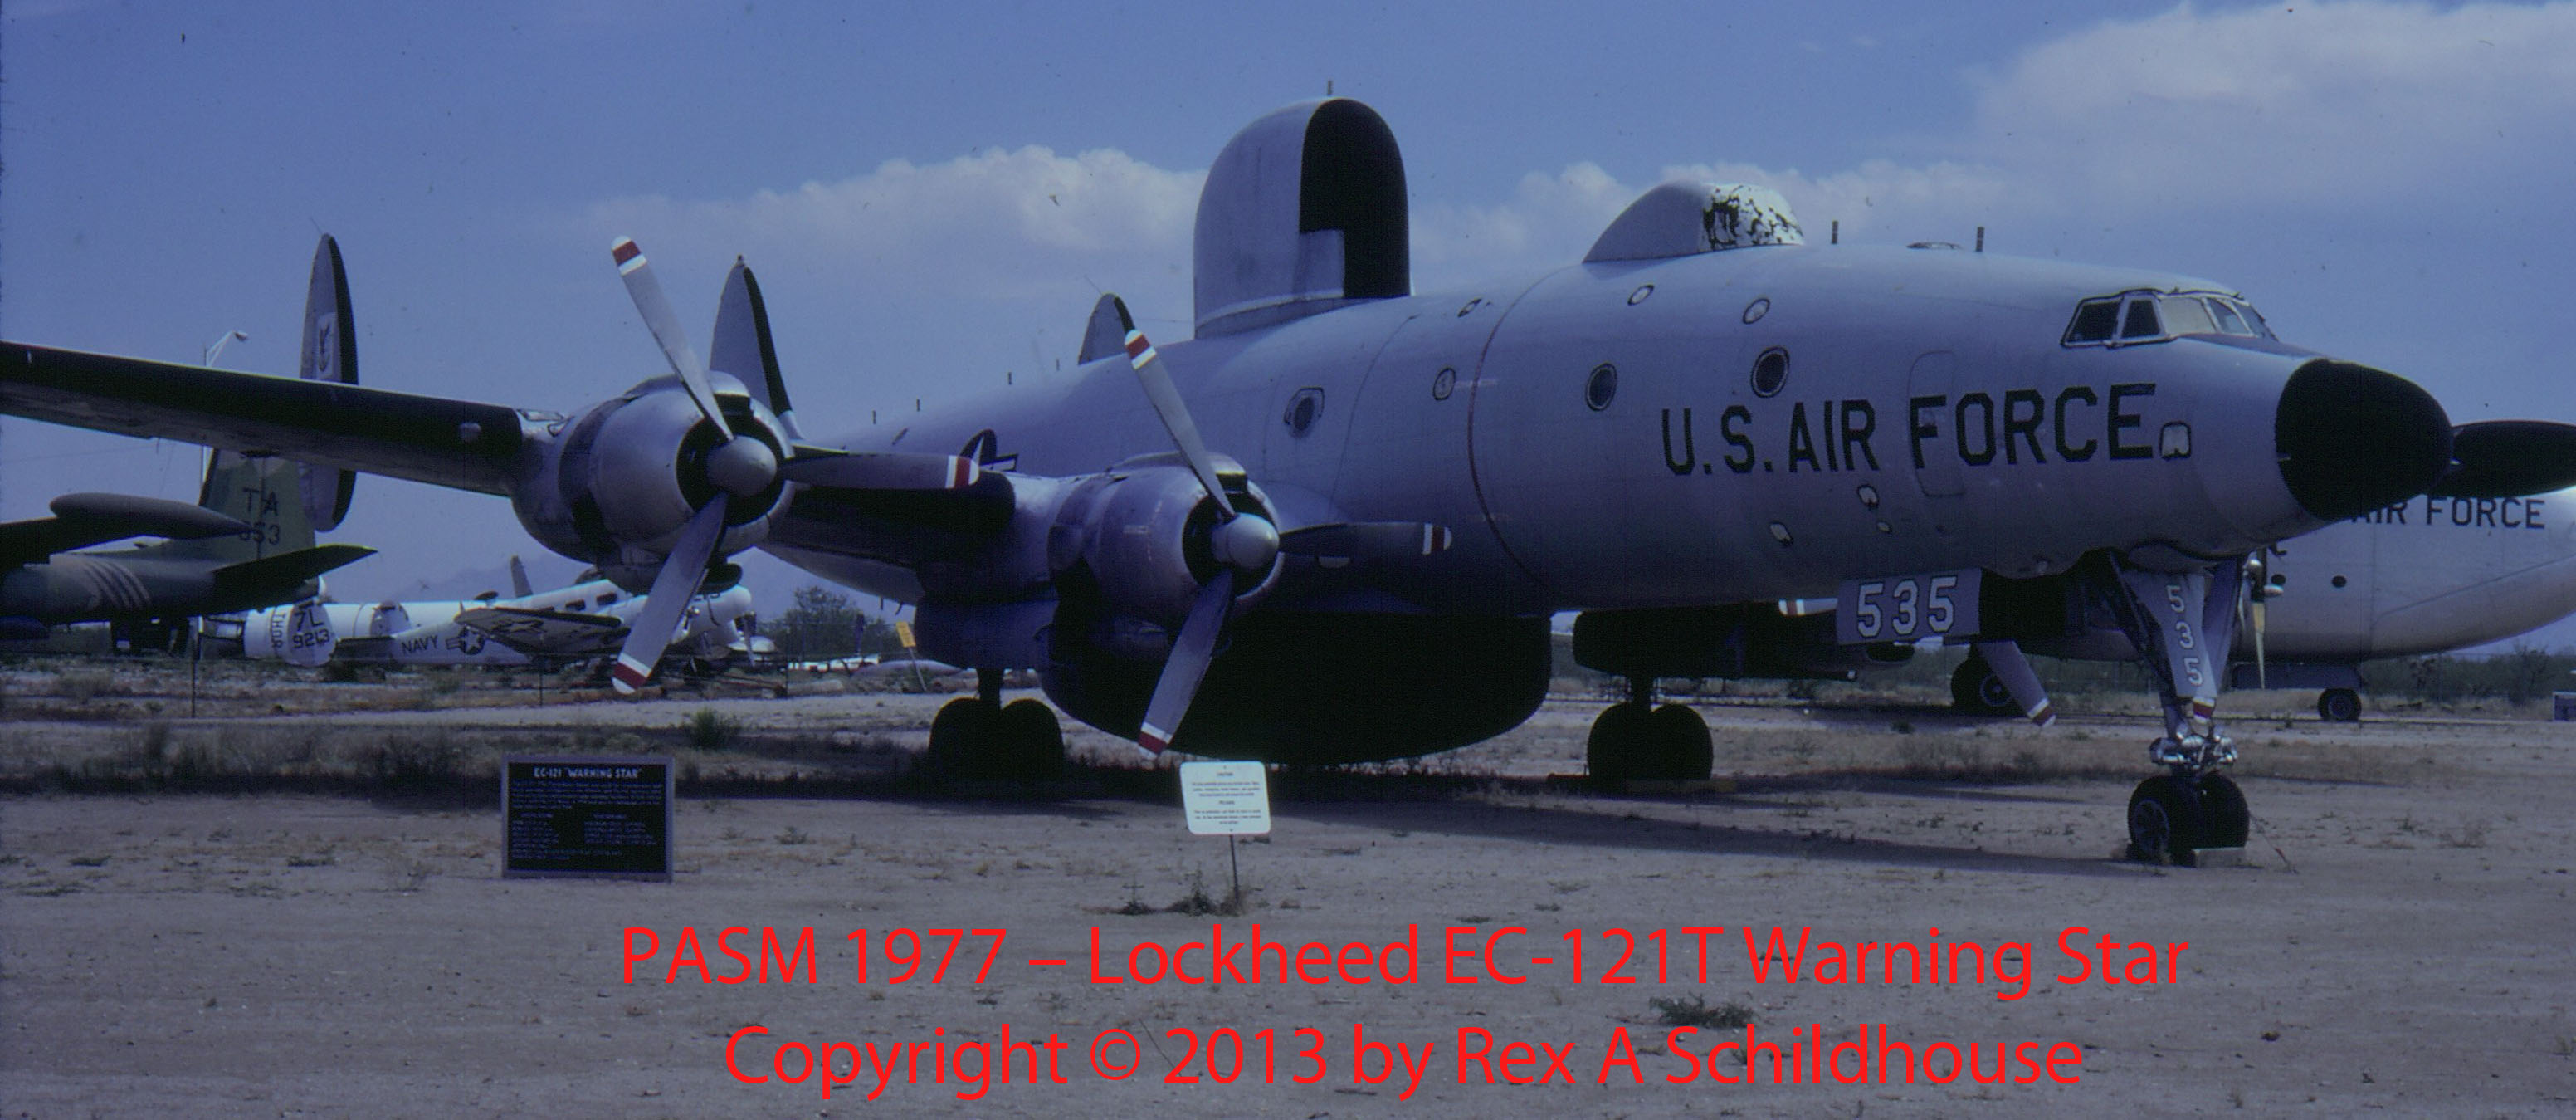 Lockheed EC-121 Warning Star